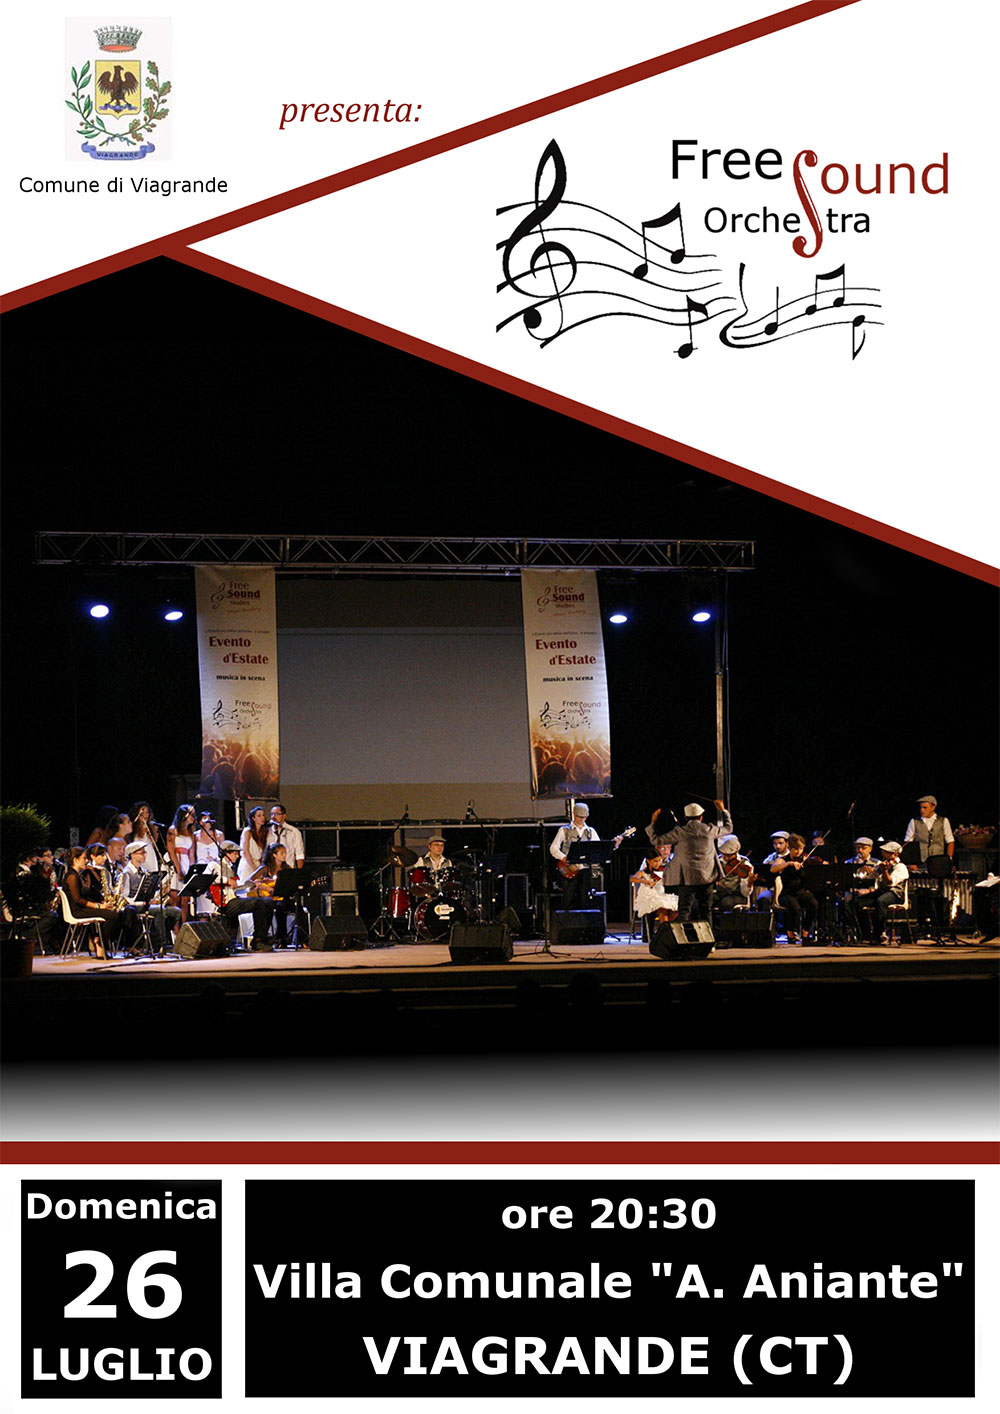 Viagrande. FreeSound Orchestra in Concert